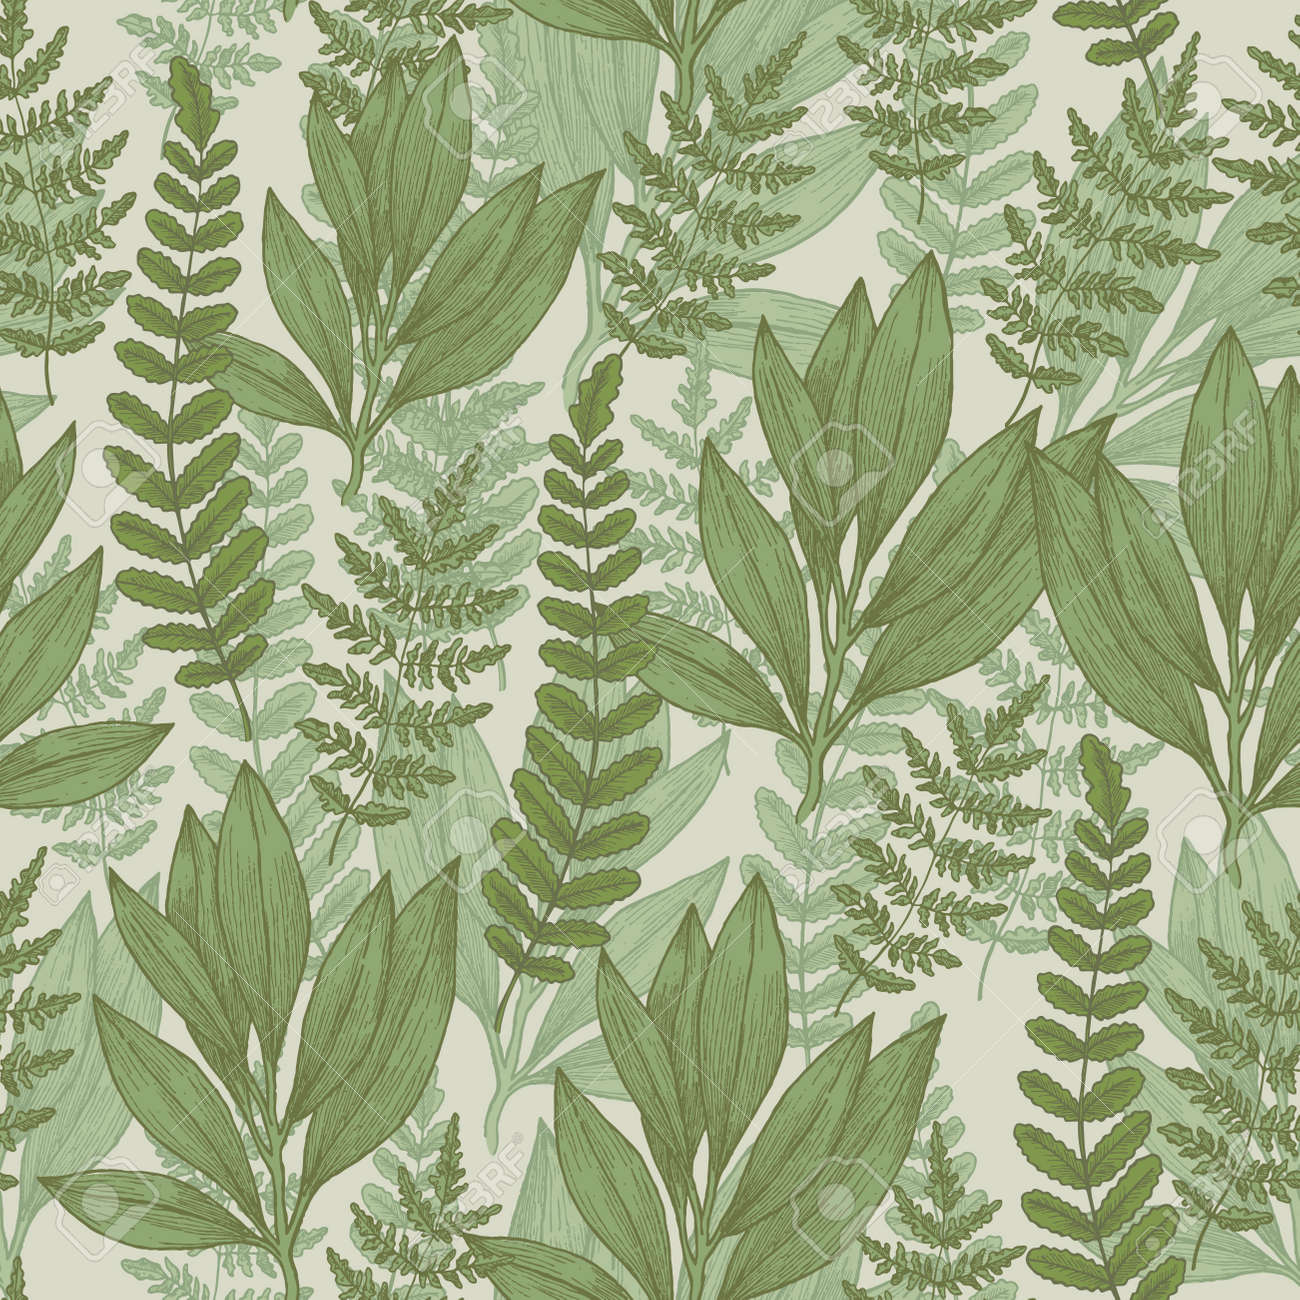 Wild Plants Seamless Pattern Vintage Floral Background Illustration Stock Photo Picture And Royalty Free Image Image 96898436